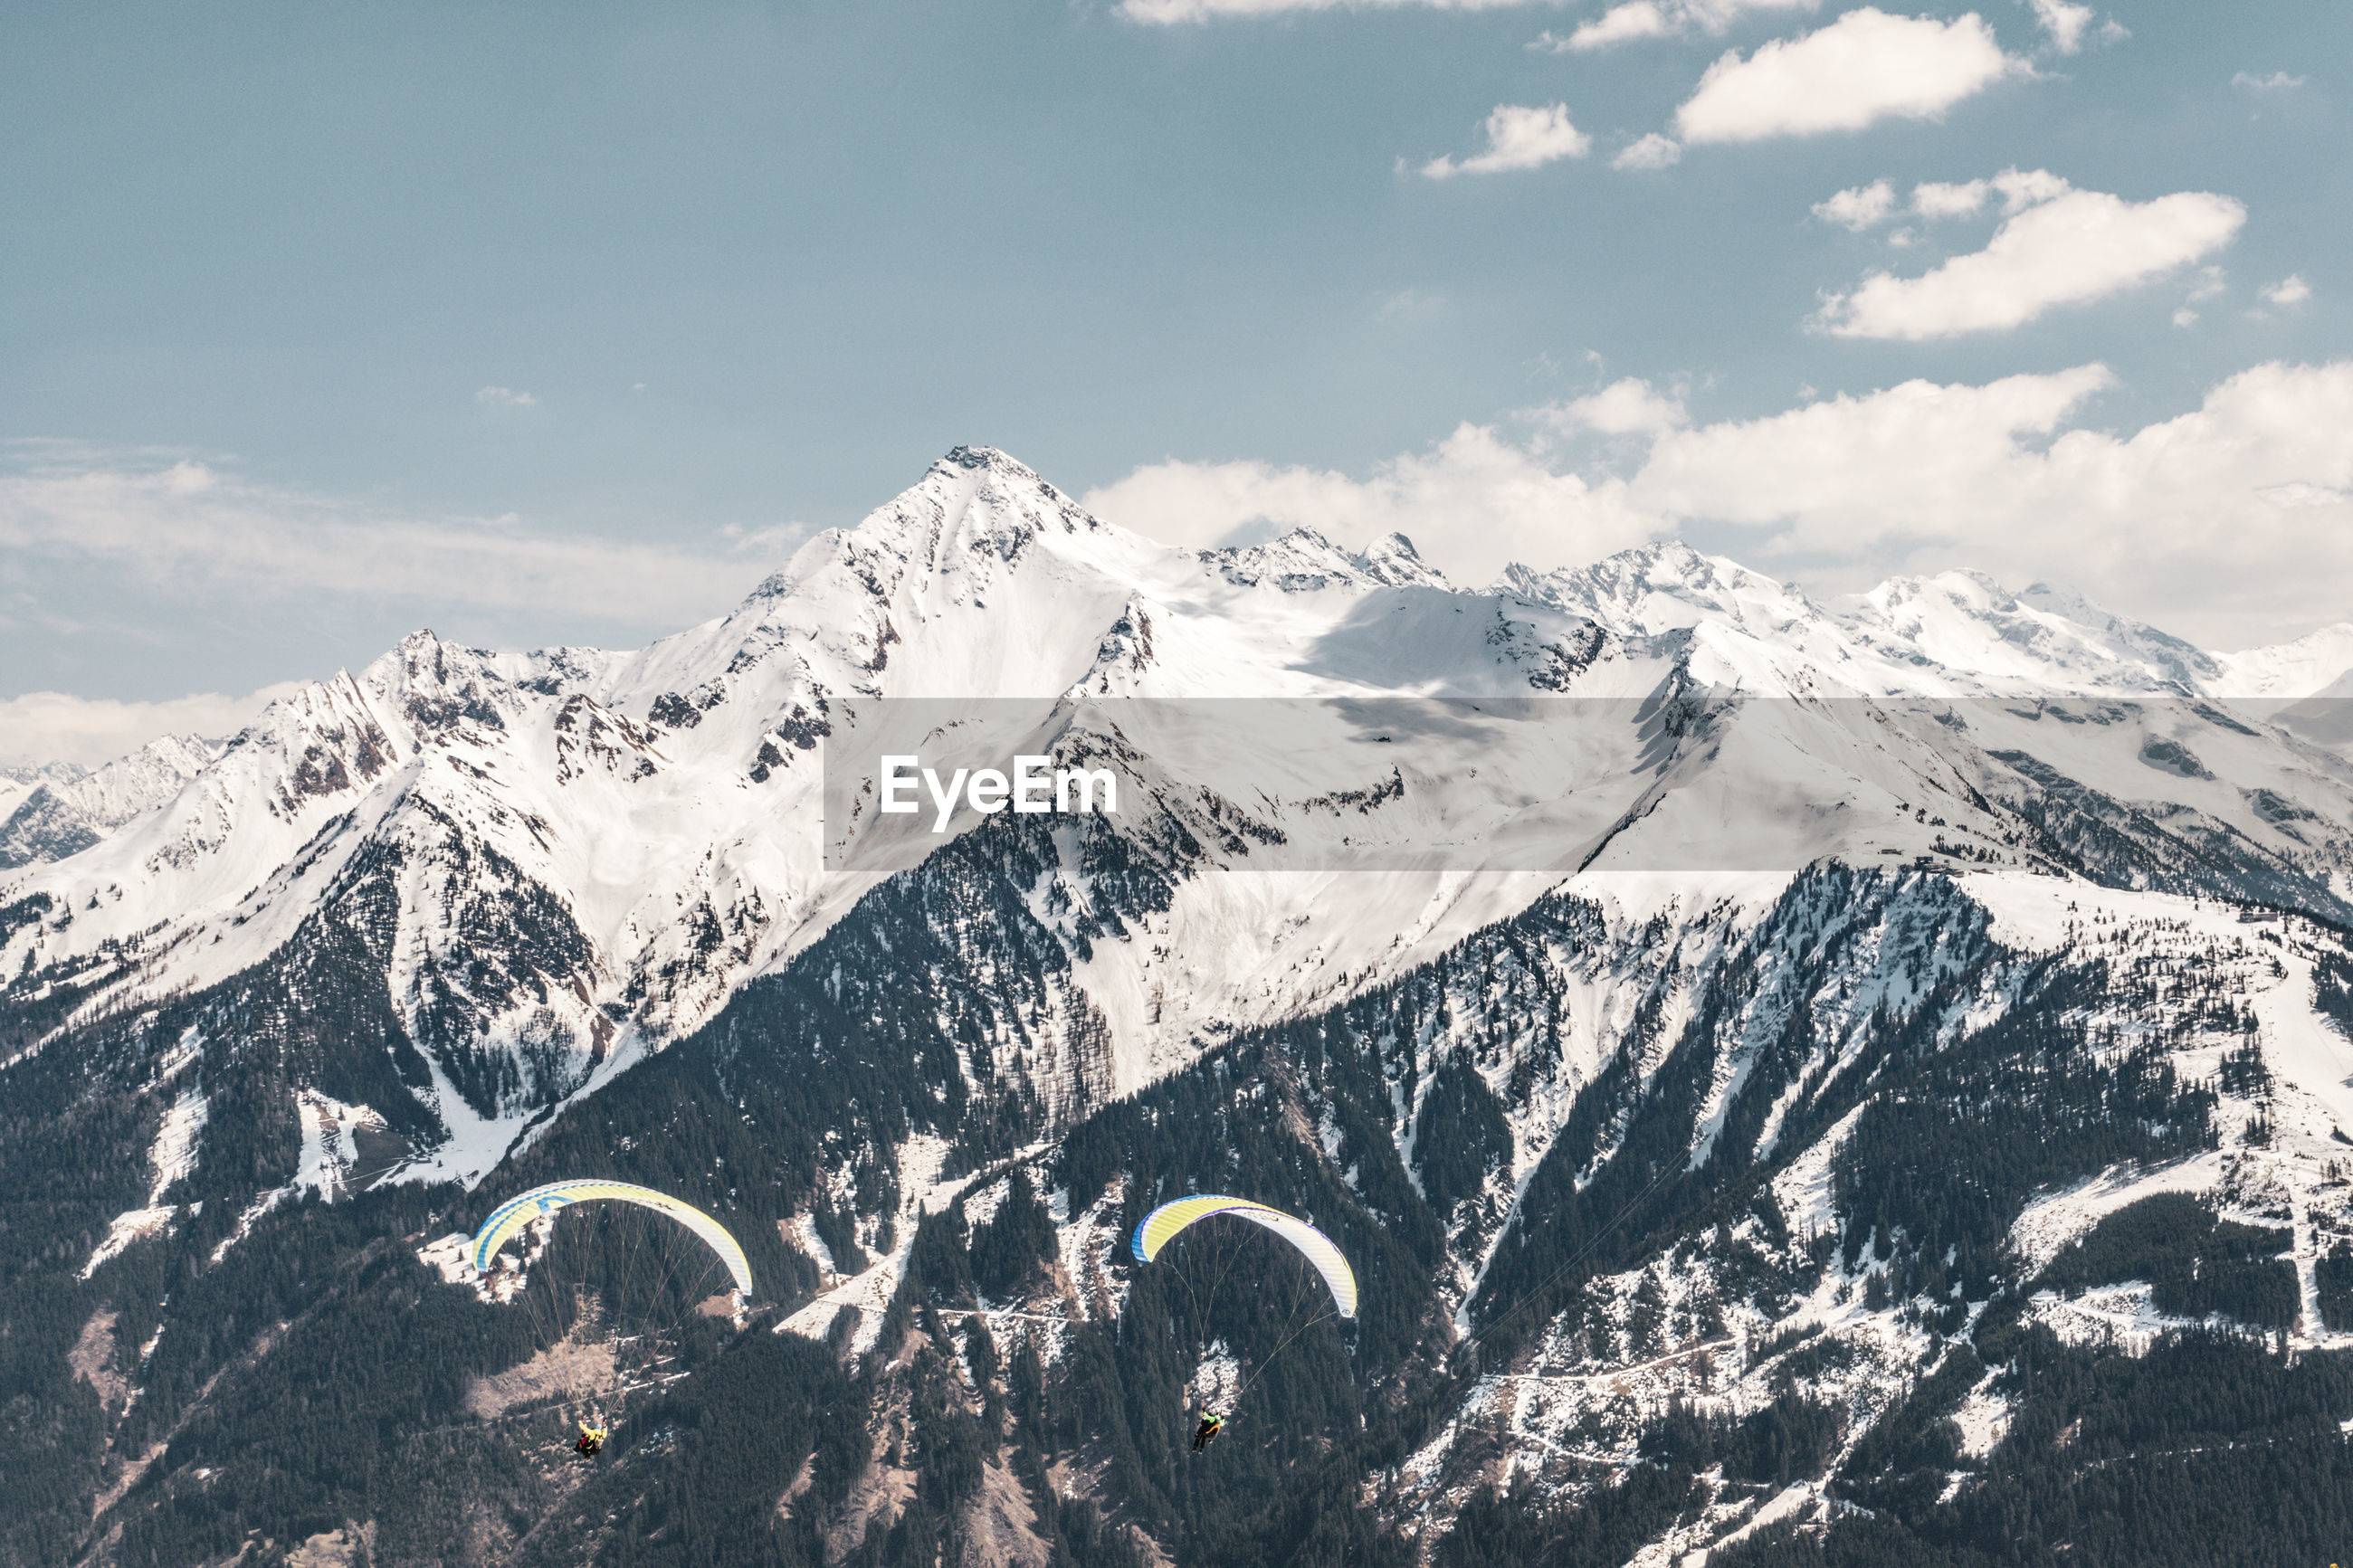 SCENIC VIEW OF SNOWCAPPED MOUNTAIN RANGE AGAINST SKY